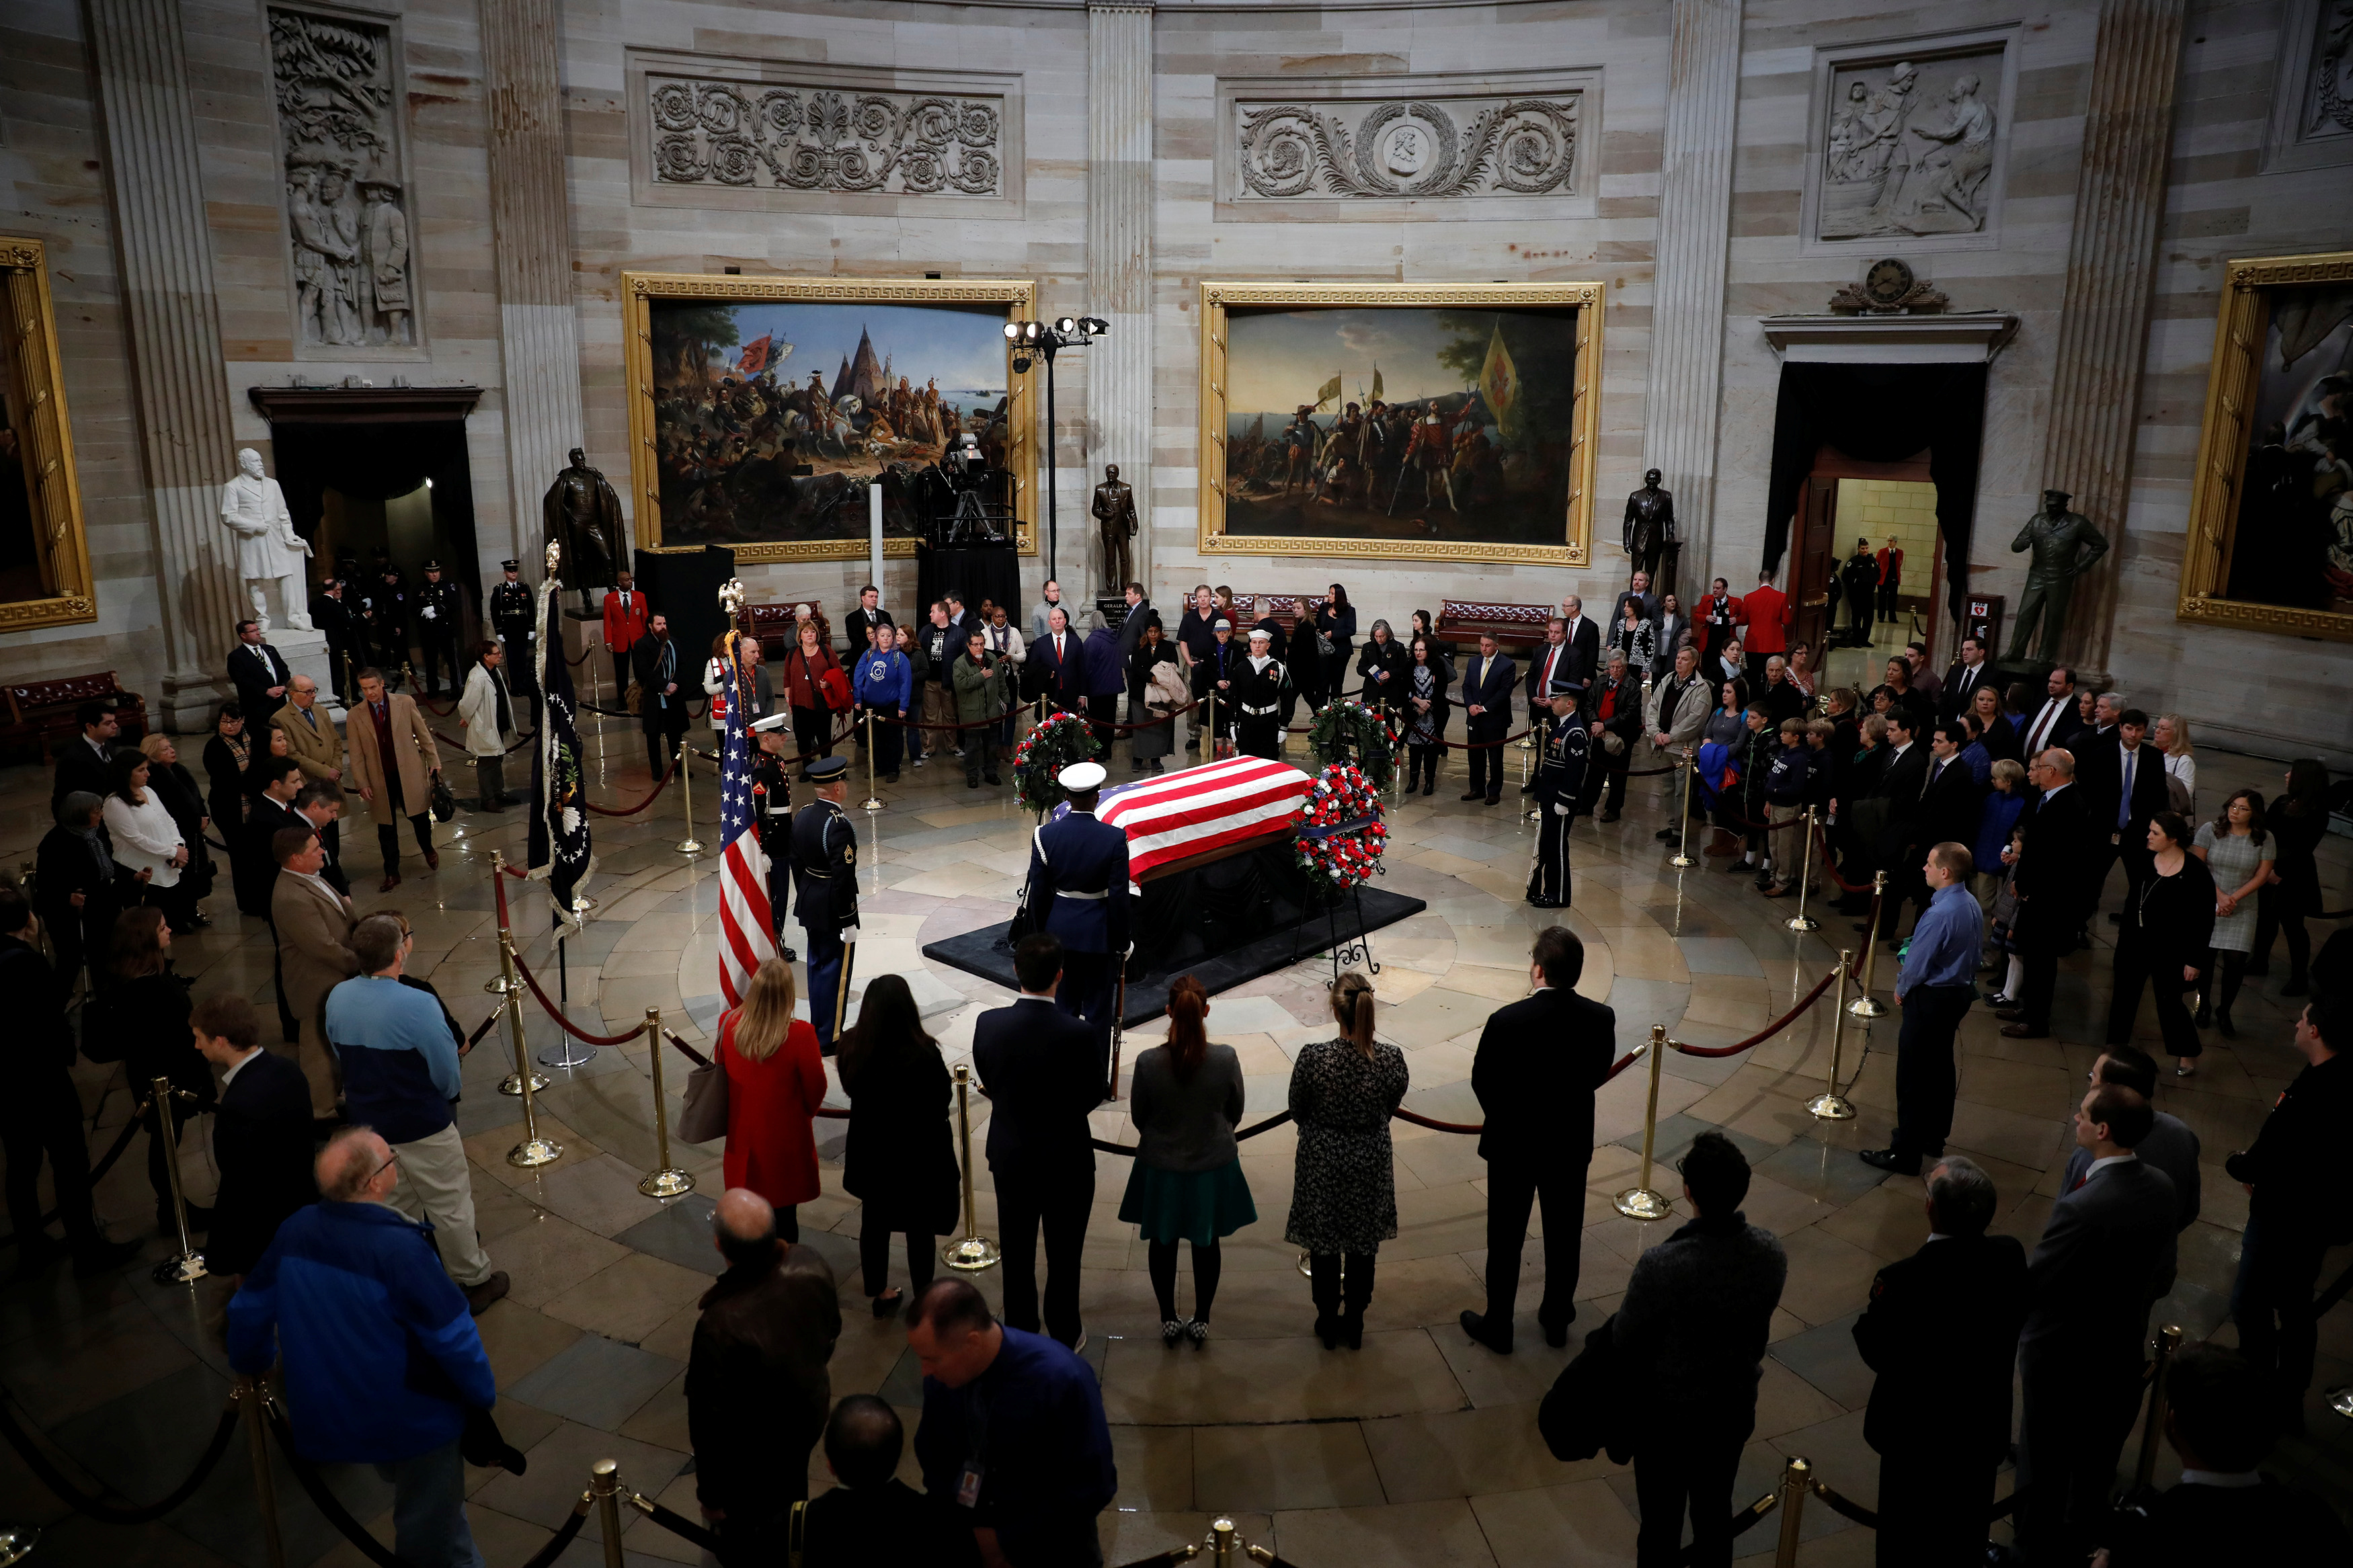 Mourners pay their respects at the casket of former U.S. President George H.W. Bush as it lies in state inside the U.S. Capitol Rotunda on Capitol Hill in Washington, U.S., December 4, 2018. REUTERS/Aaron P. Bernstein